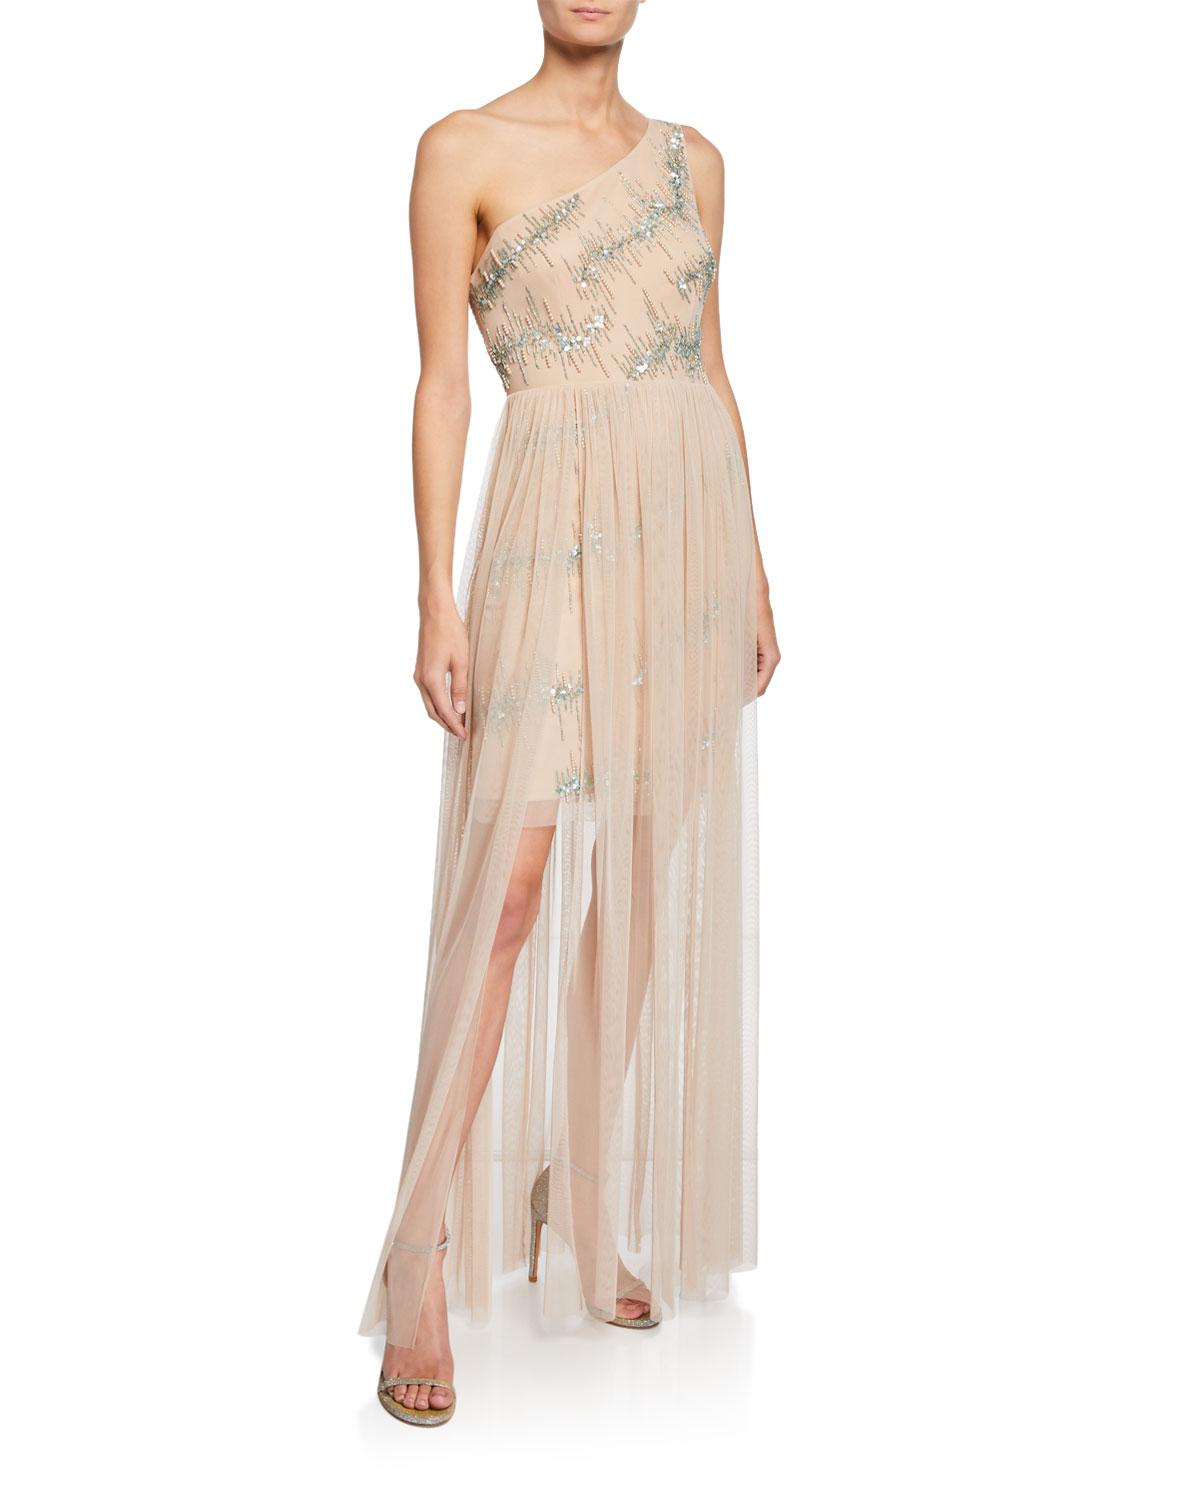 4a96bcc29ab41 Aidan By Aidan Mattox. Women s Natural One-shoulder Hand-beaded Mesh Gown W   Sequins   Tulle Skirt Overlay